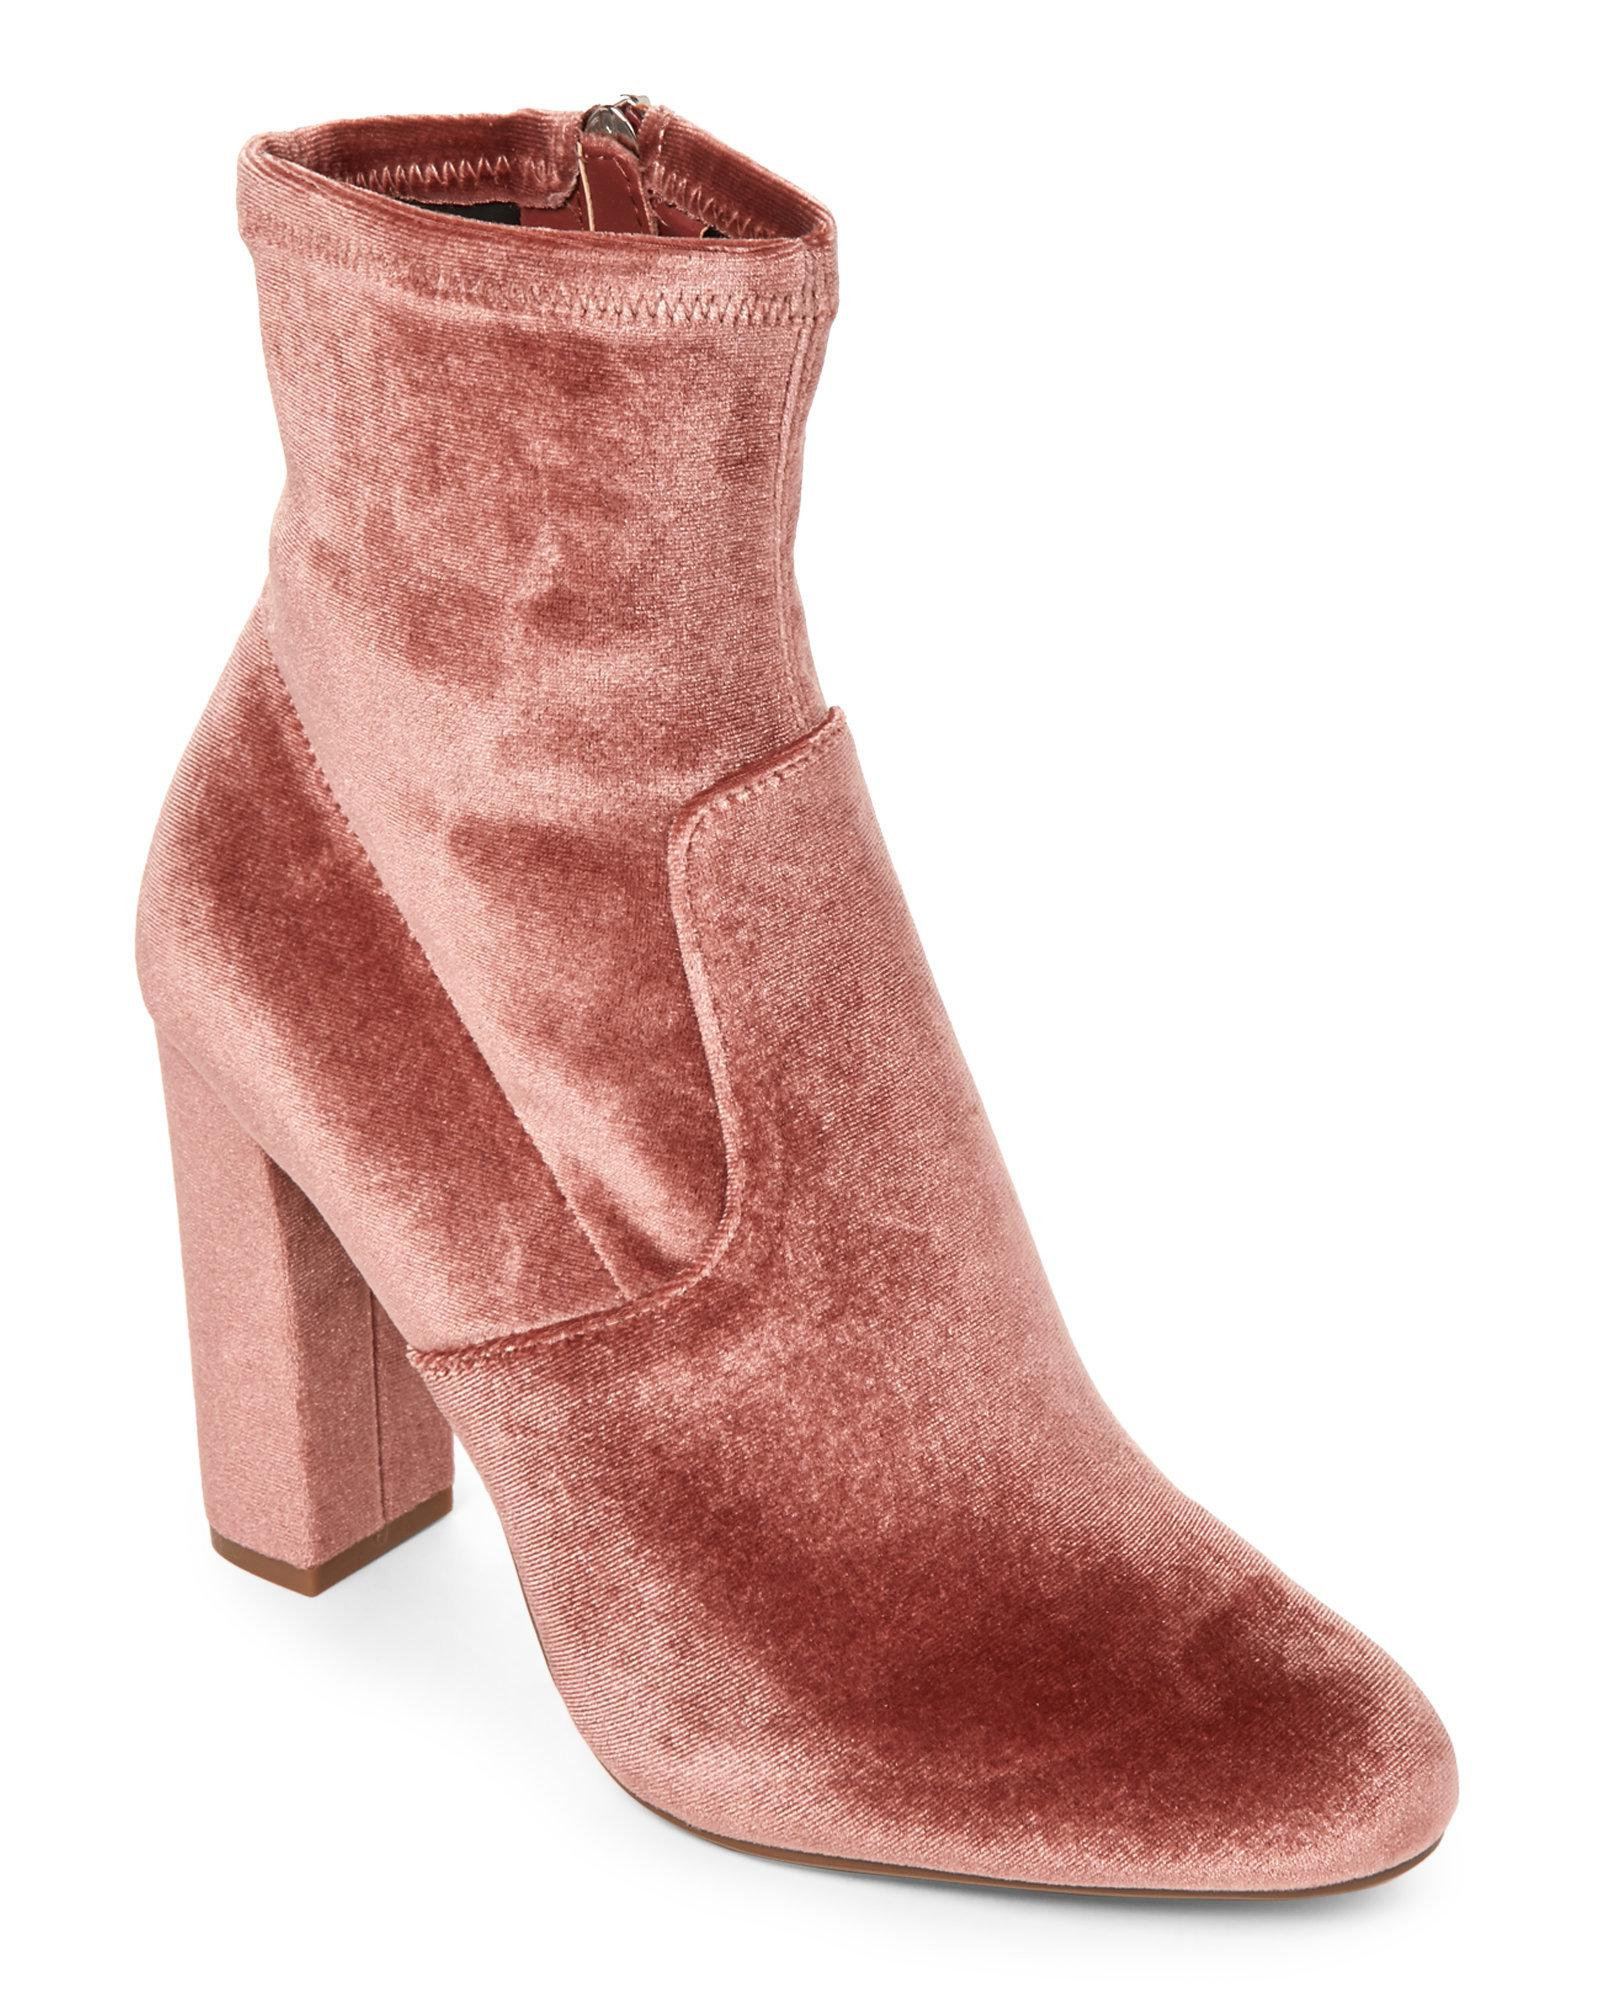 be844cd8e2d Lyst - Steve Madden Blush Edit Velvet Booties in Pink